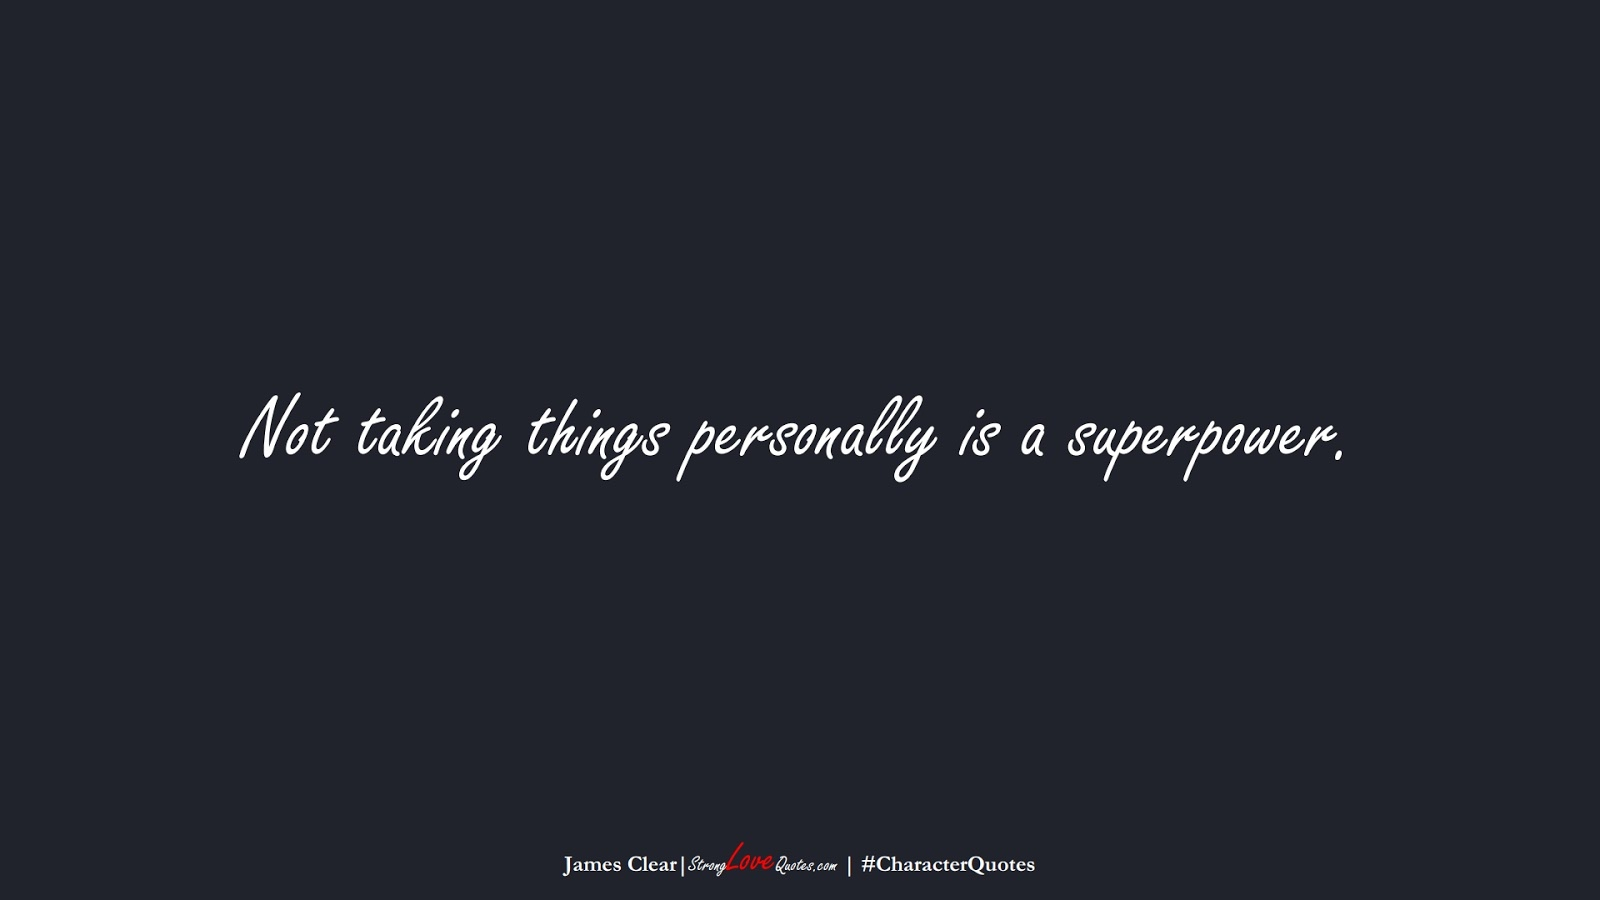 Not taking things personally is a superpower. (James Clear);  #CharacterQuotes